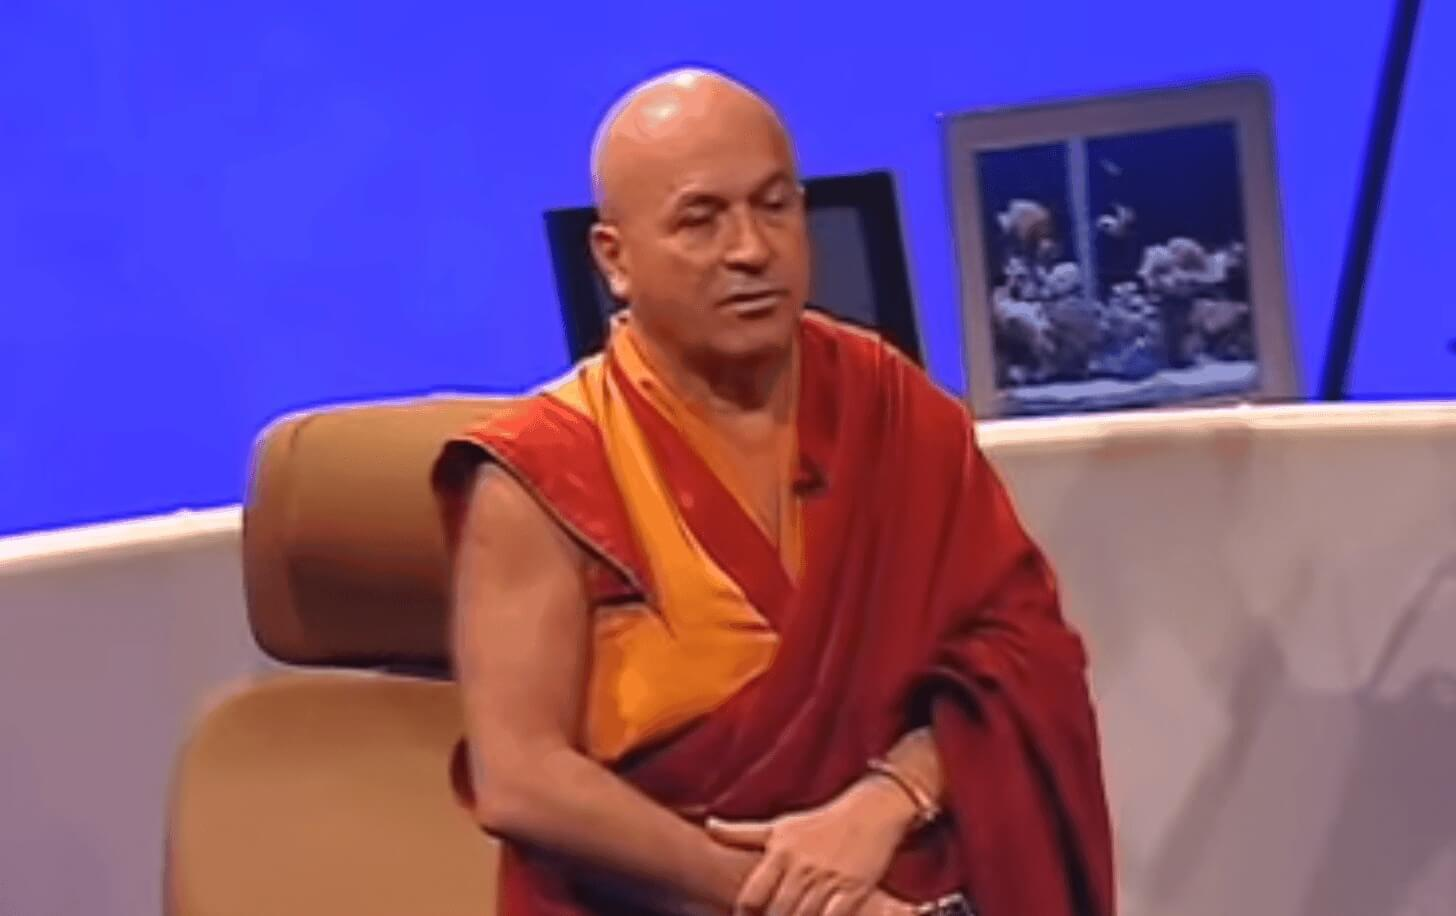 The Habits Of Happinessby Matthieu Ricard